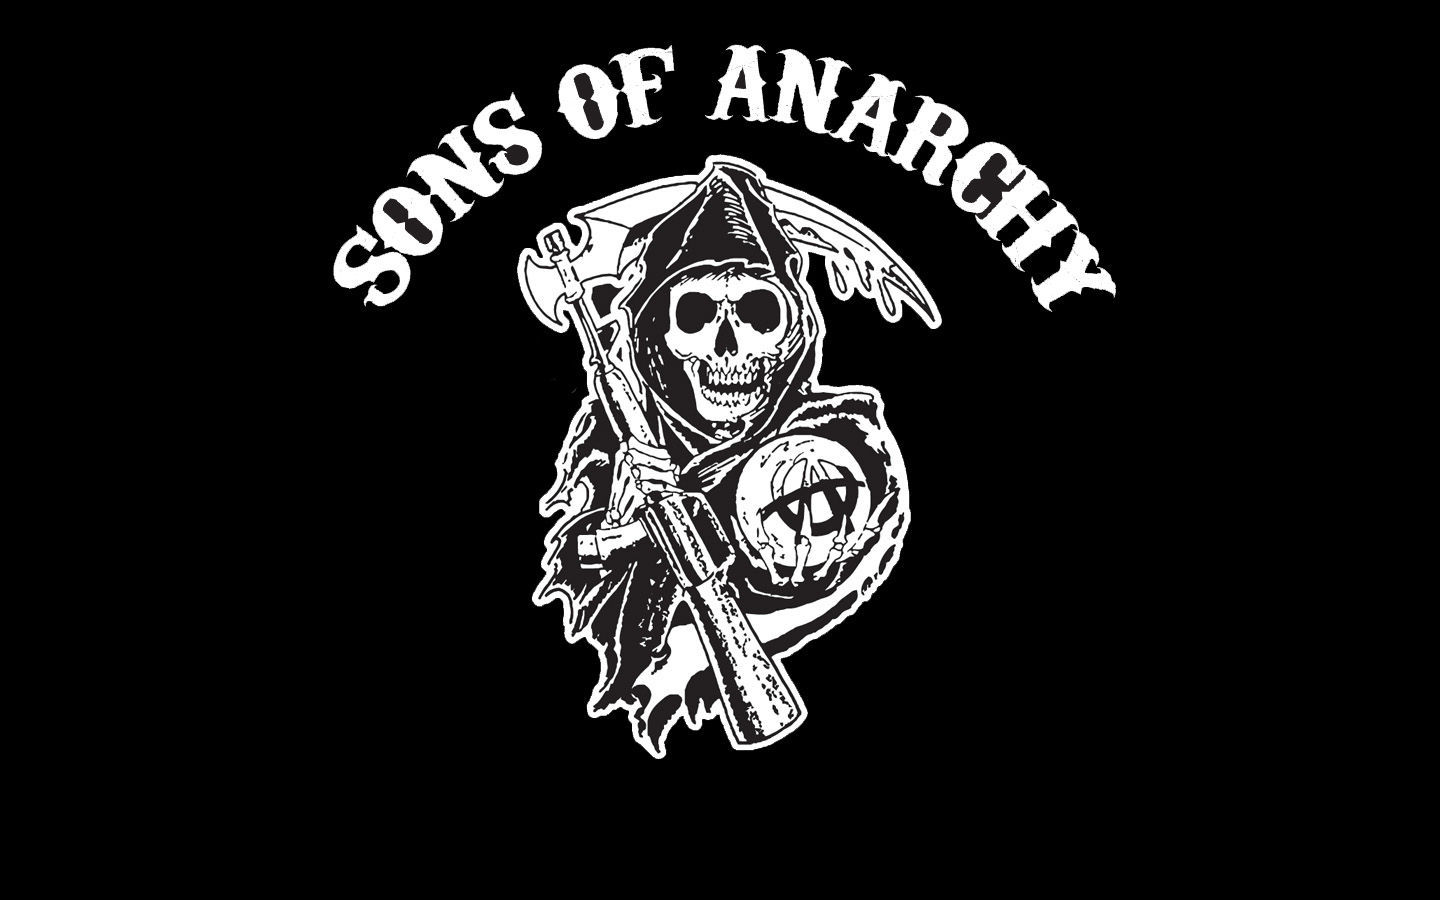 9084 - Personajes de Sons Of Anarchy [Difícil]